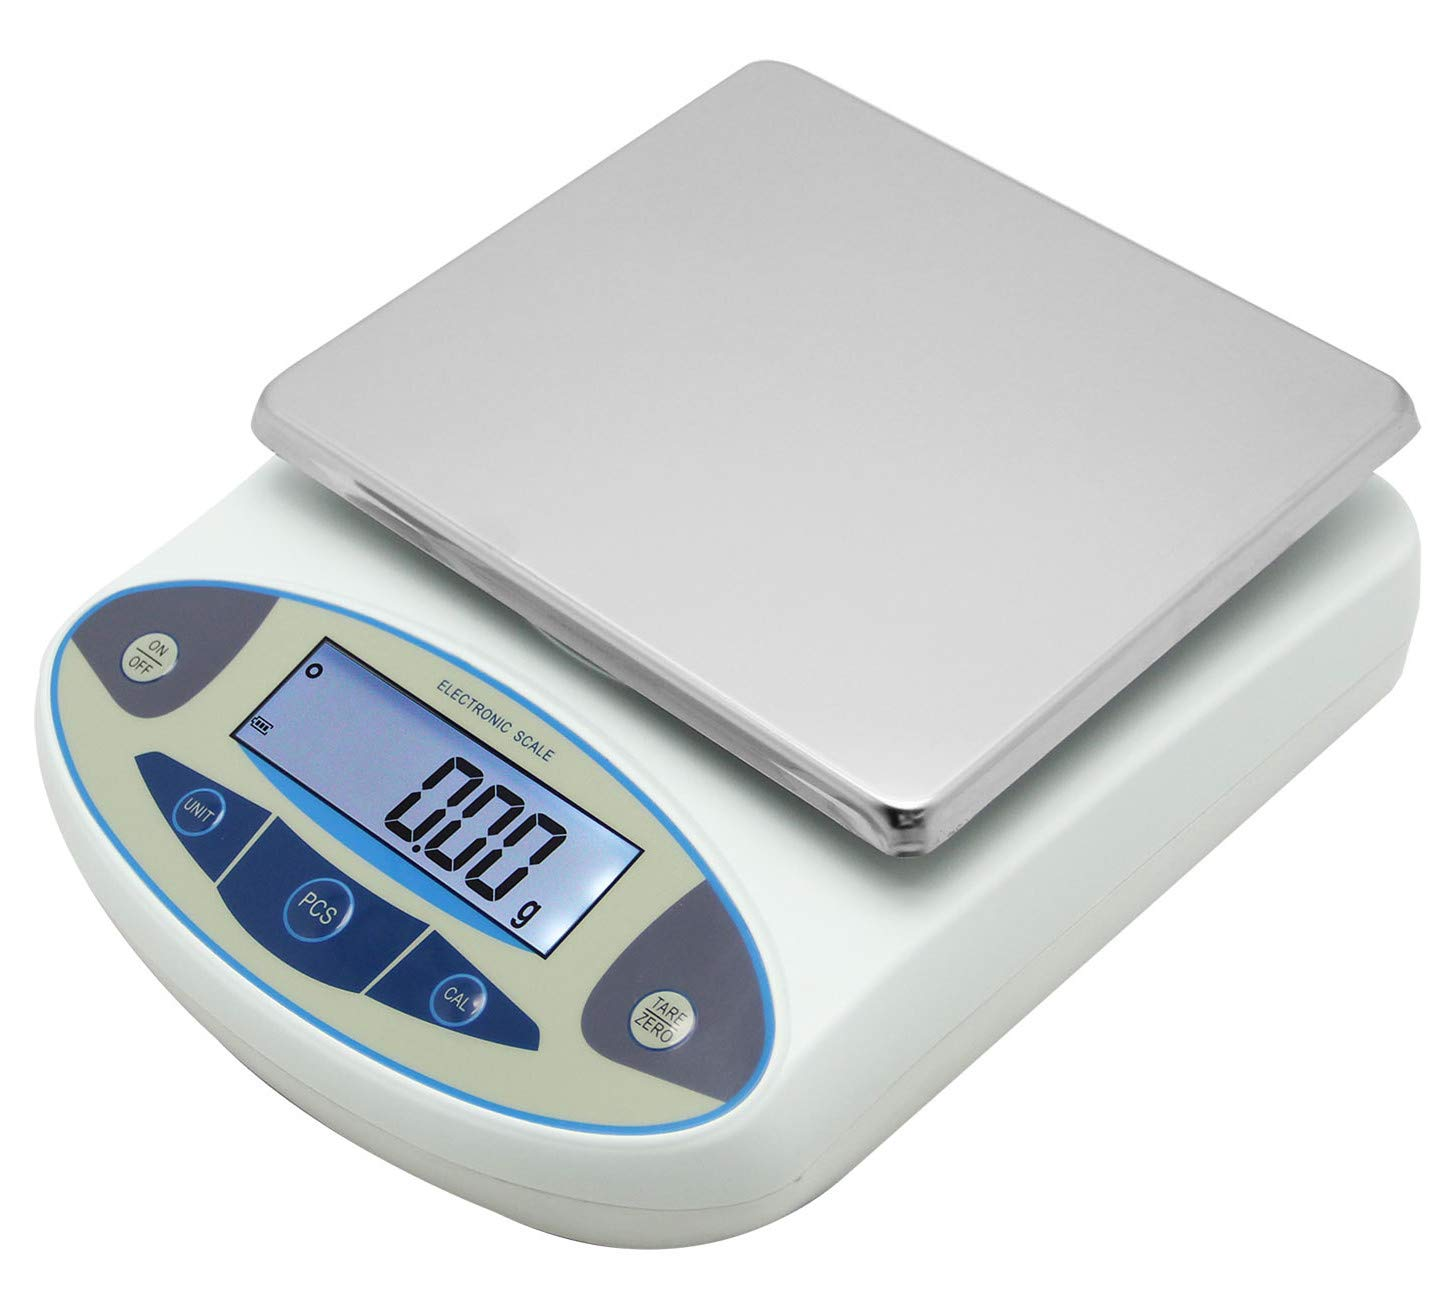 CGOLDENWALL High Precision Lab Analytical Electronic Balance Digital Precision Scale Laboratory Precision Weighing Electronic Scales Balance Jewelry Scales Gold Balance Kitchen Scales (3000g, 0.01g) by CGOLDENWALL